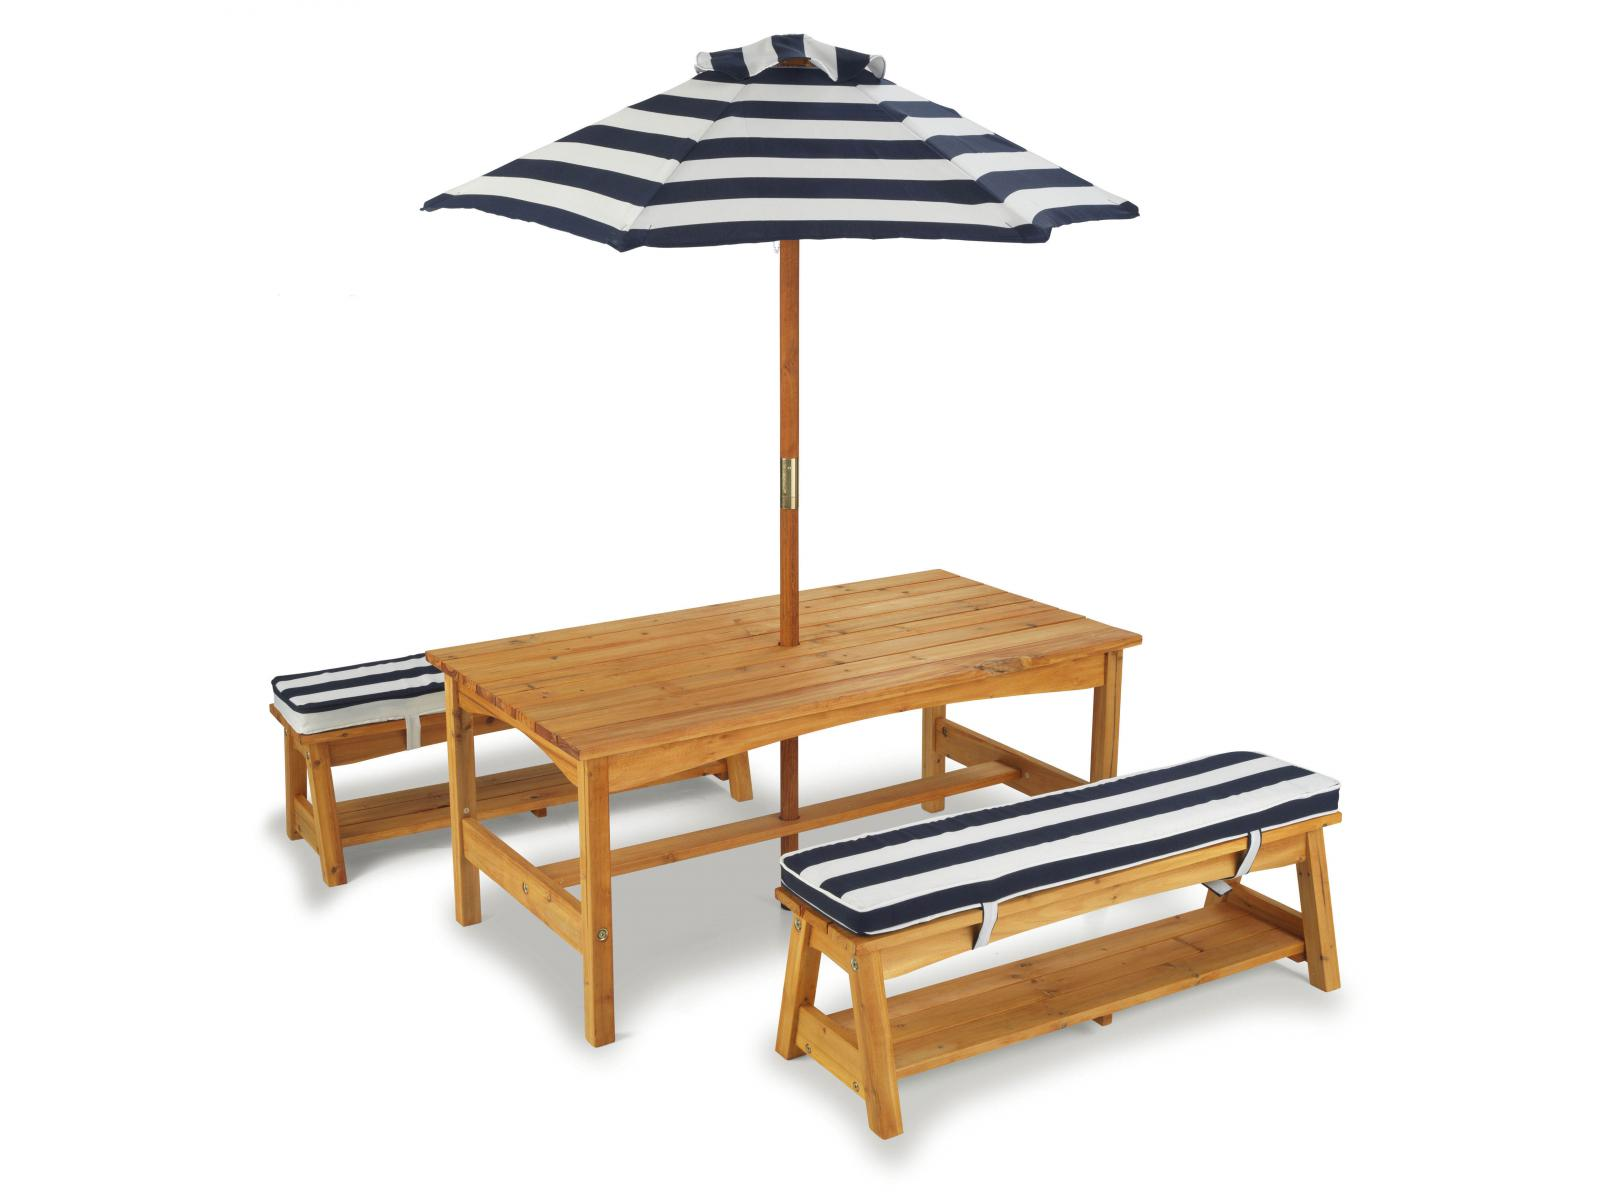 Kidkraft ensemble table et bancs rembourr s d 39 ext rieur avec parasol - Table d activite exterieur ...